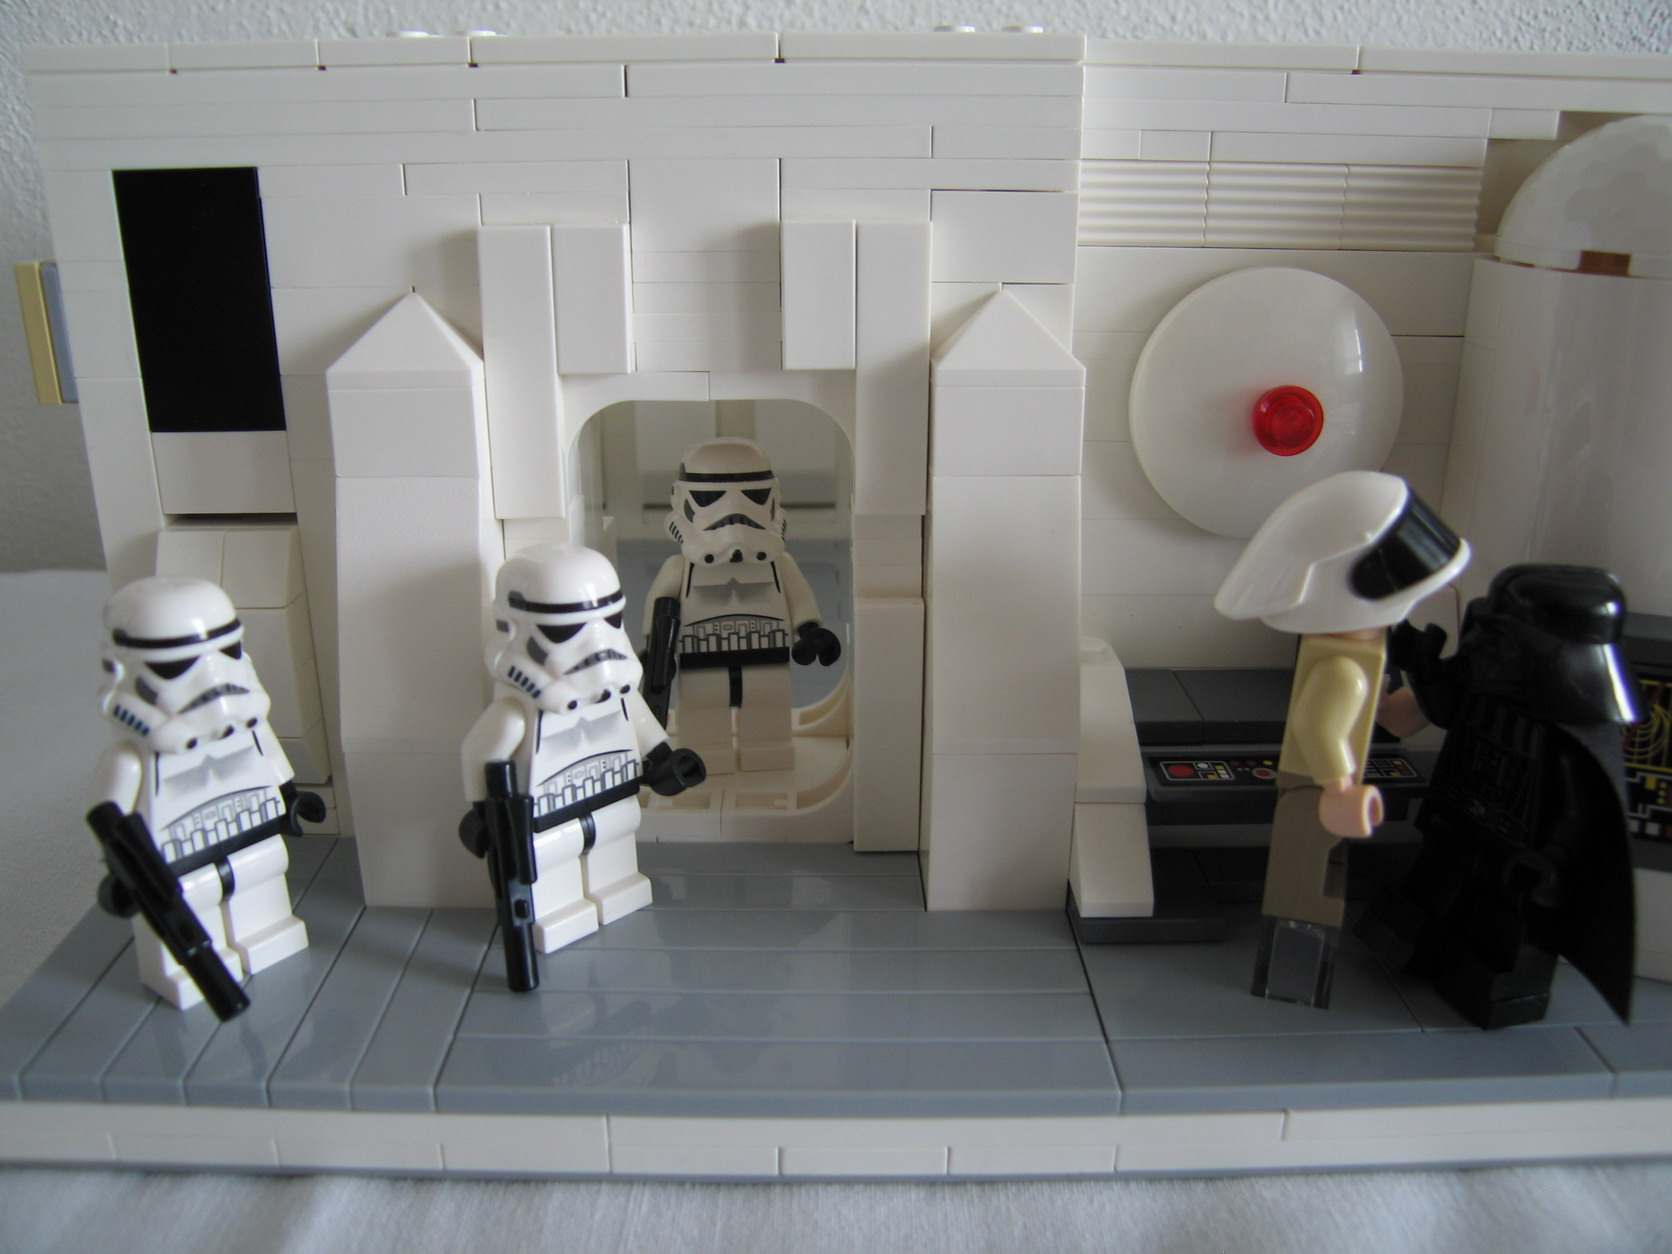 Darth Vader: If this is a consular ship, where is the ambassador?